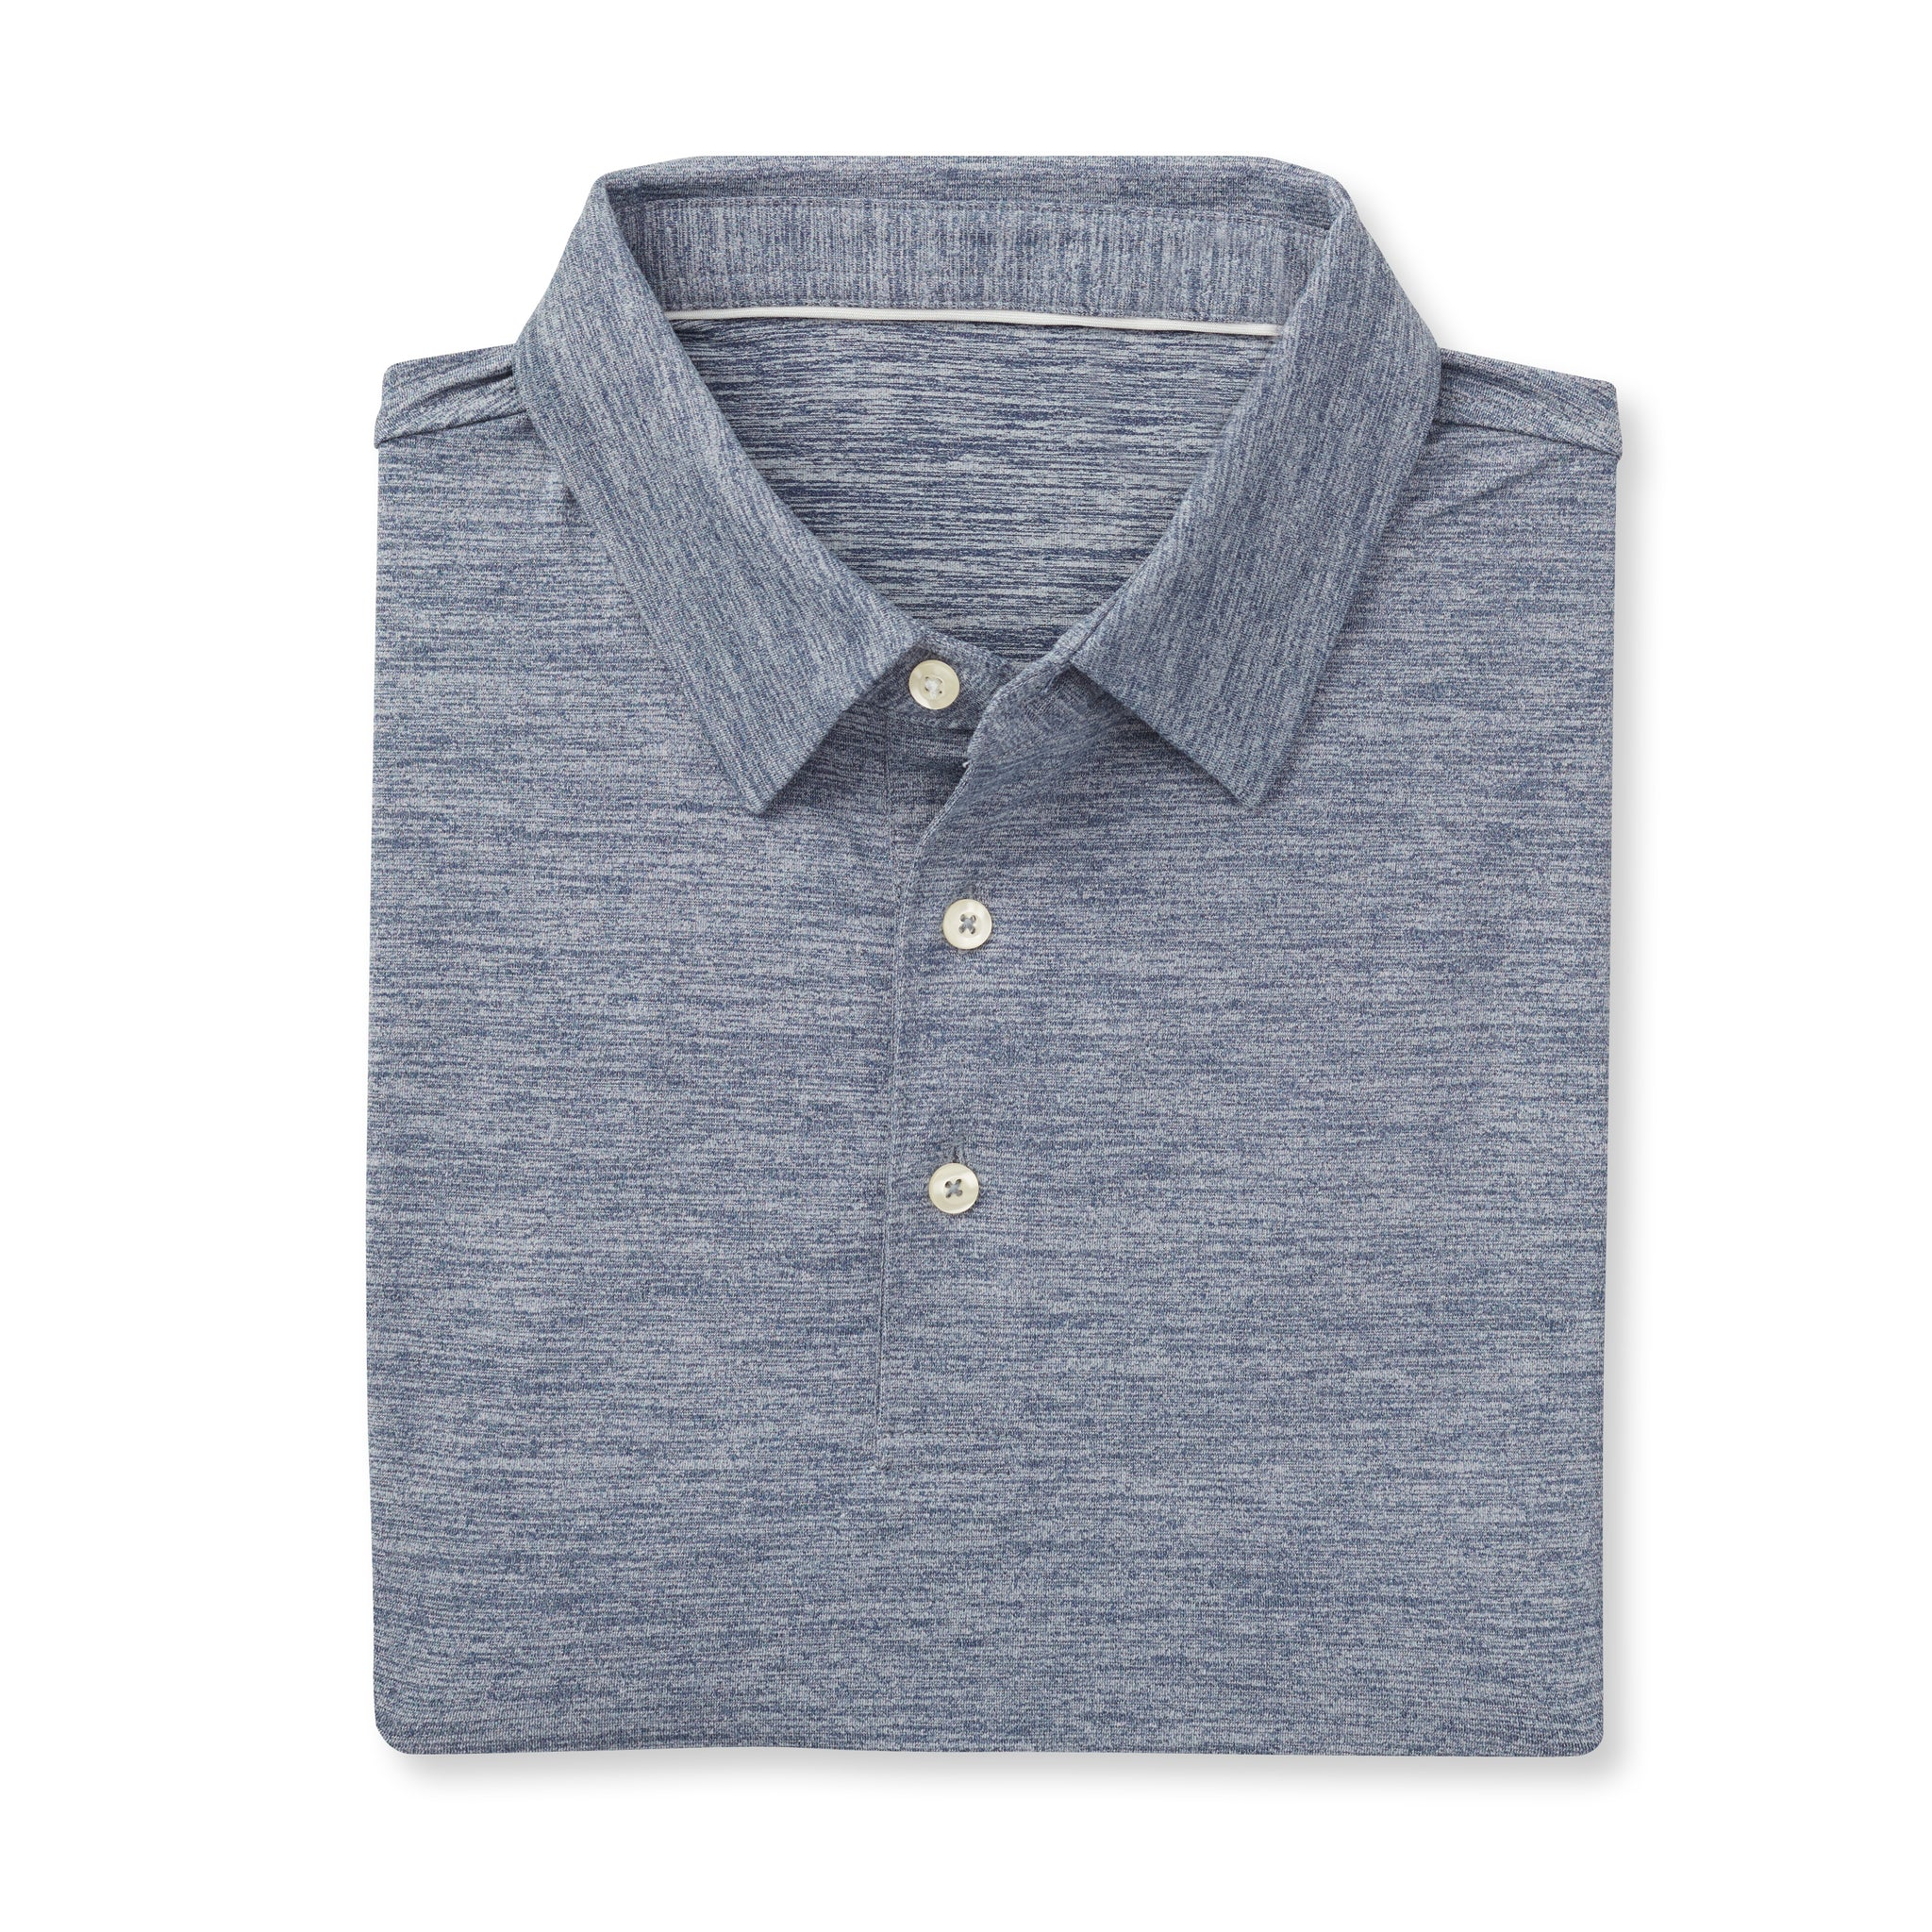 ECOTEC Peached Short Sleeve Polo - Navy/Cloud IS76802